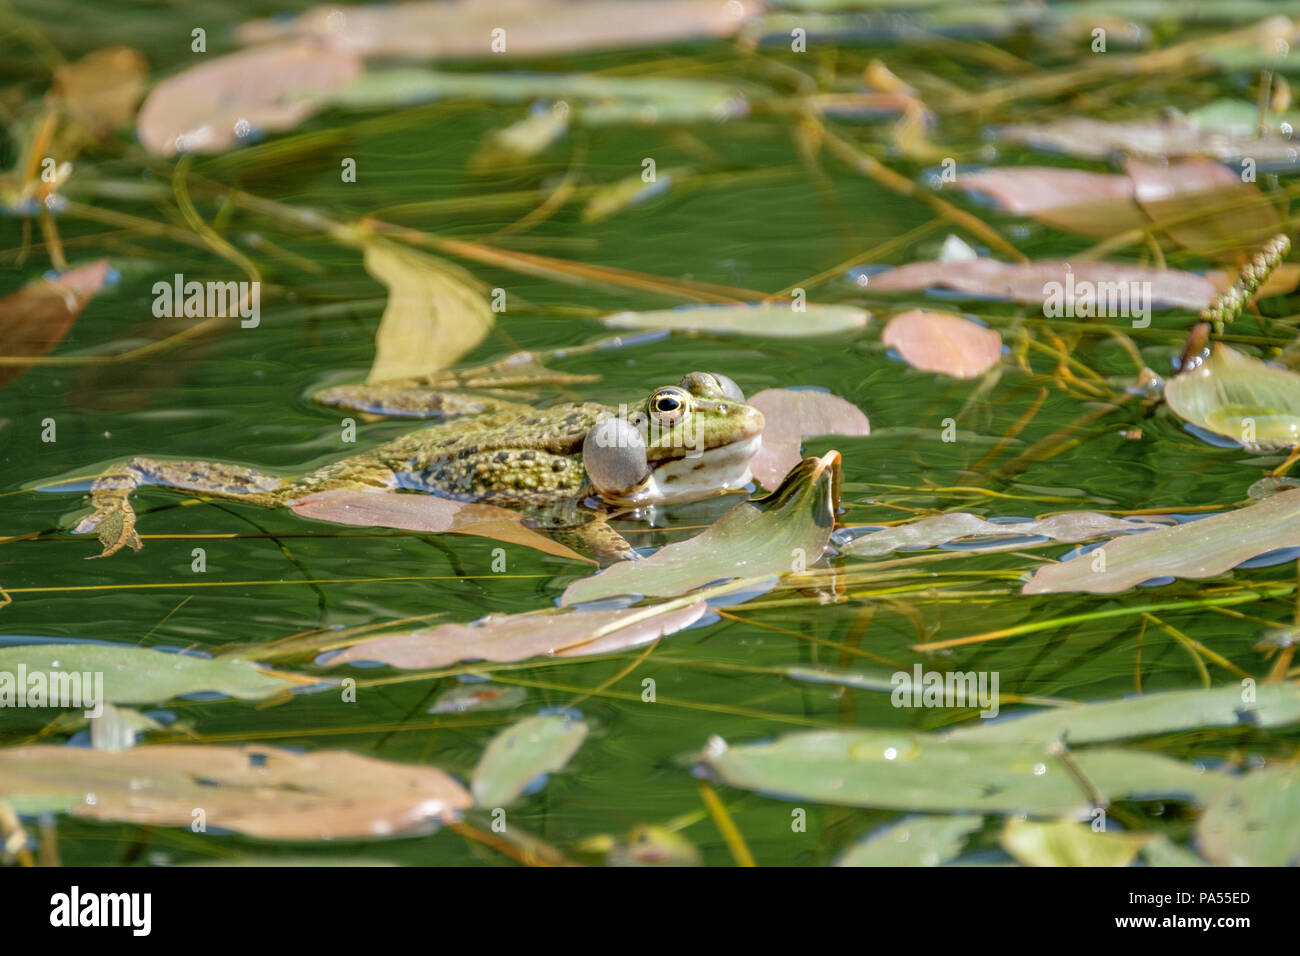 The call of a frog. Frogs in a beautiful clear fresh water pond in Switzerland Stock Photo